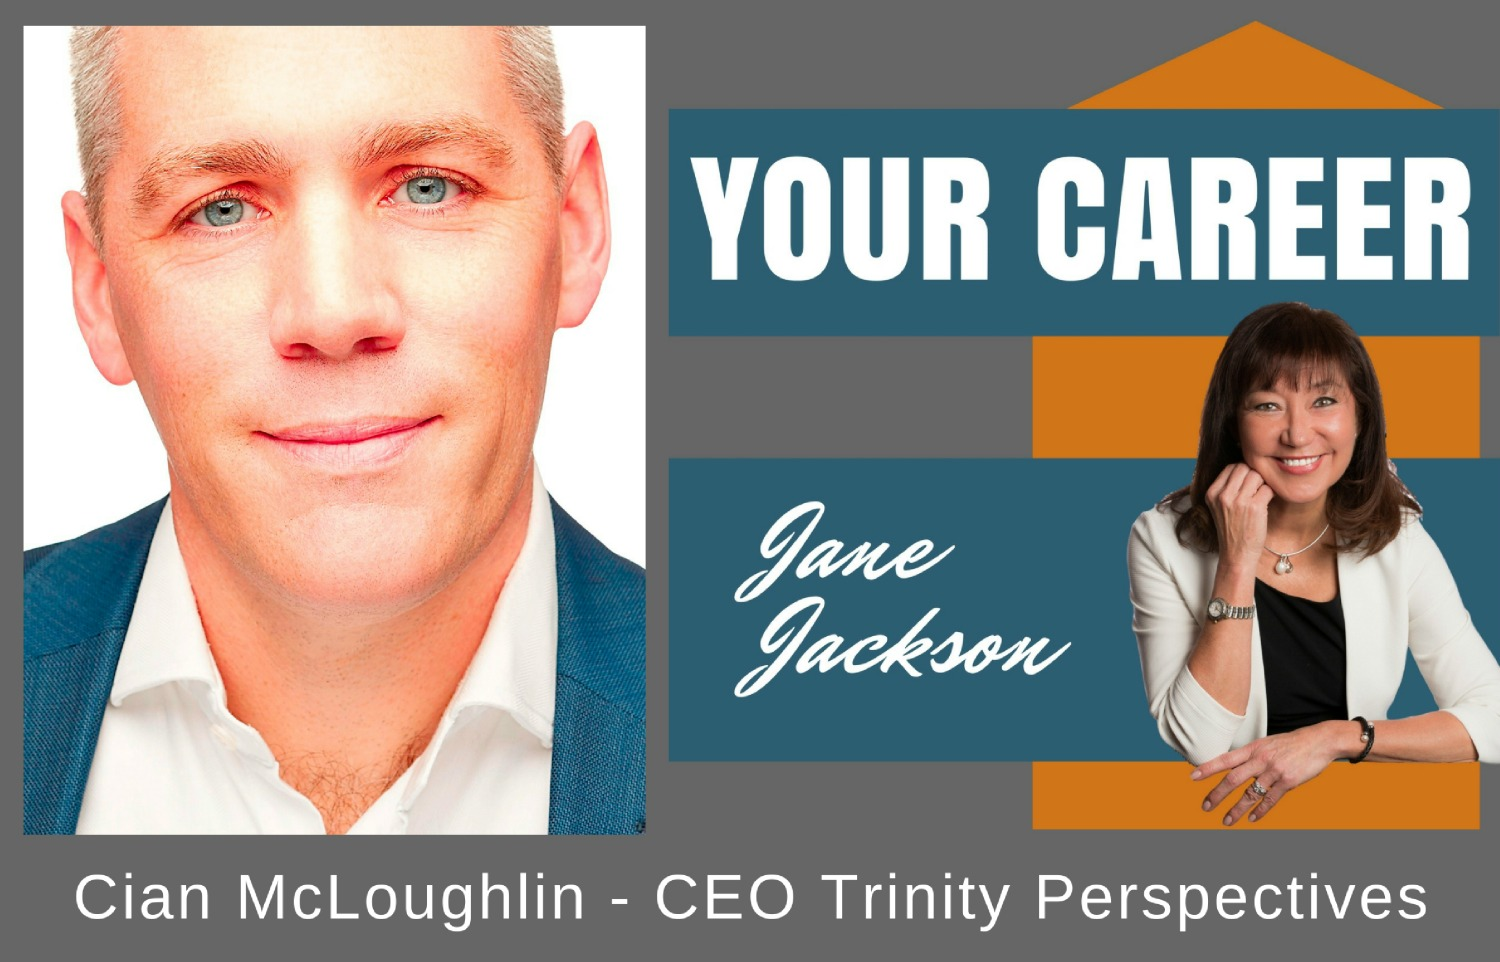 cian mcloughlin, trinity perspectives, sales trainer, sales, jane jackson, career coach, career, careers, leadership coach, sydney, australia,